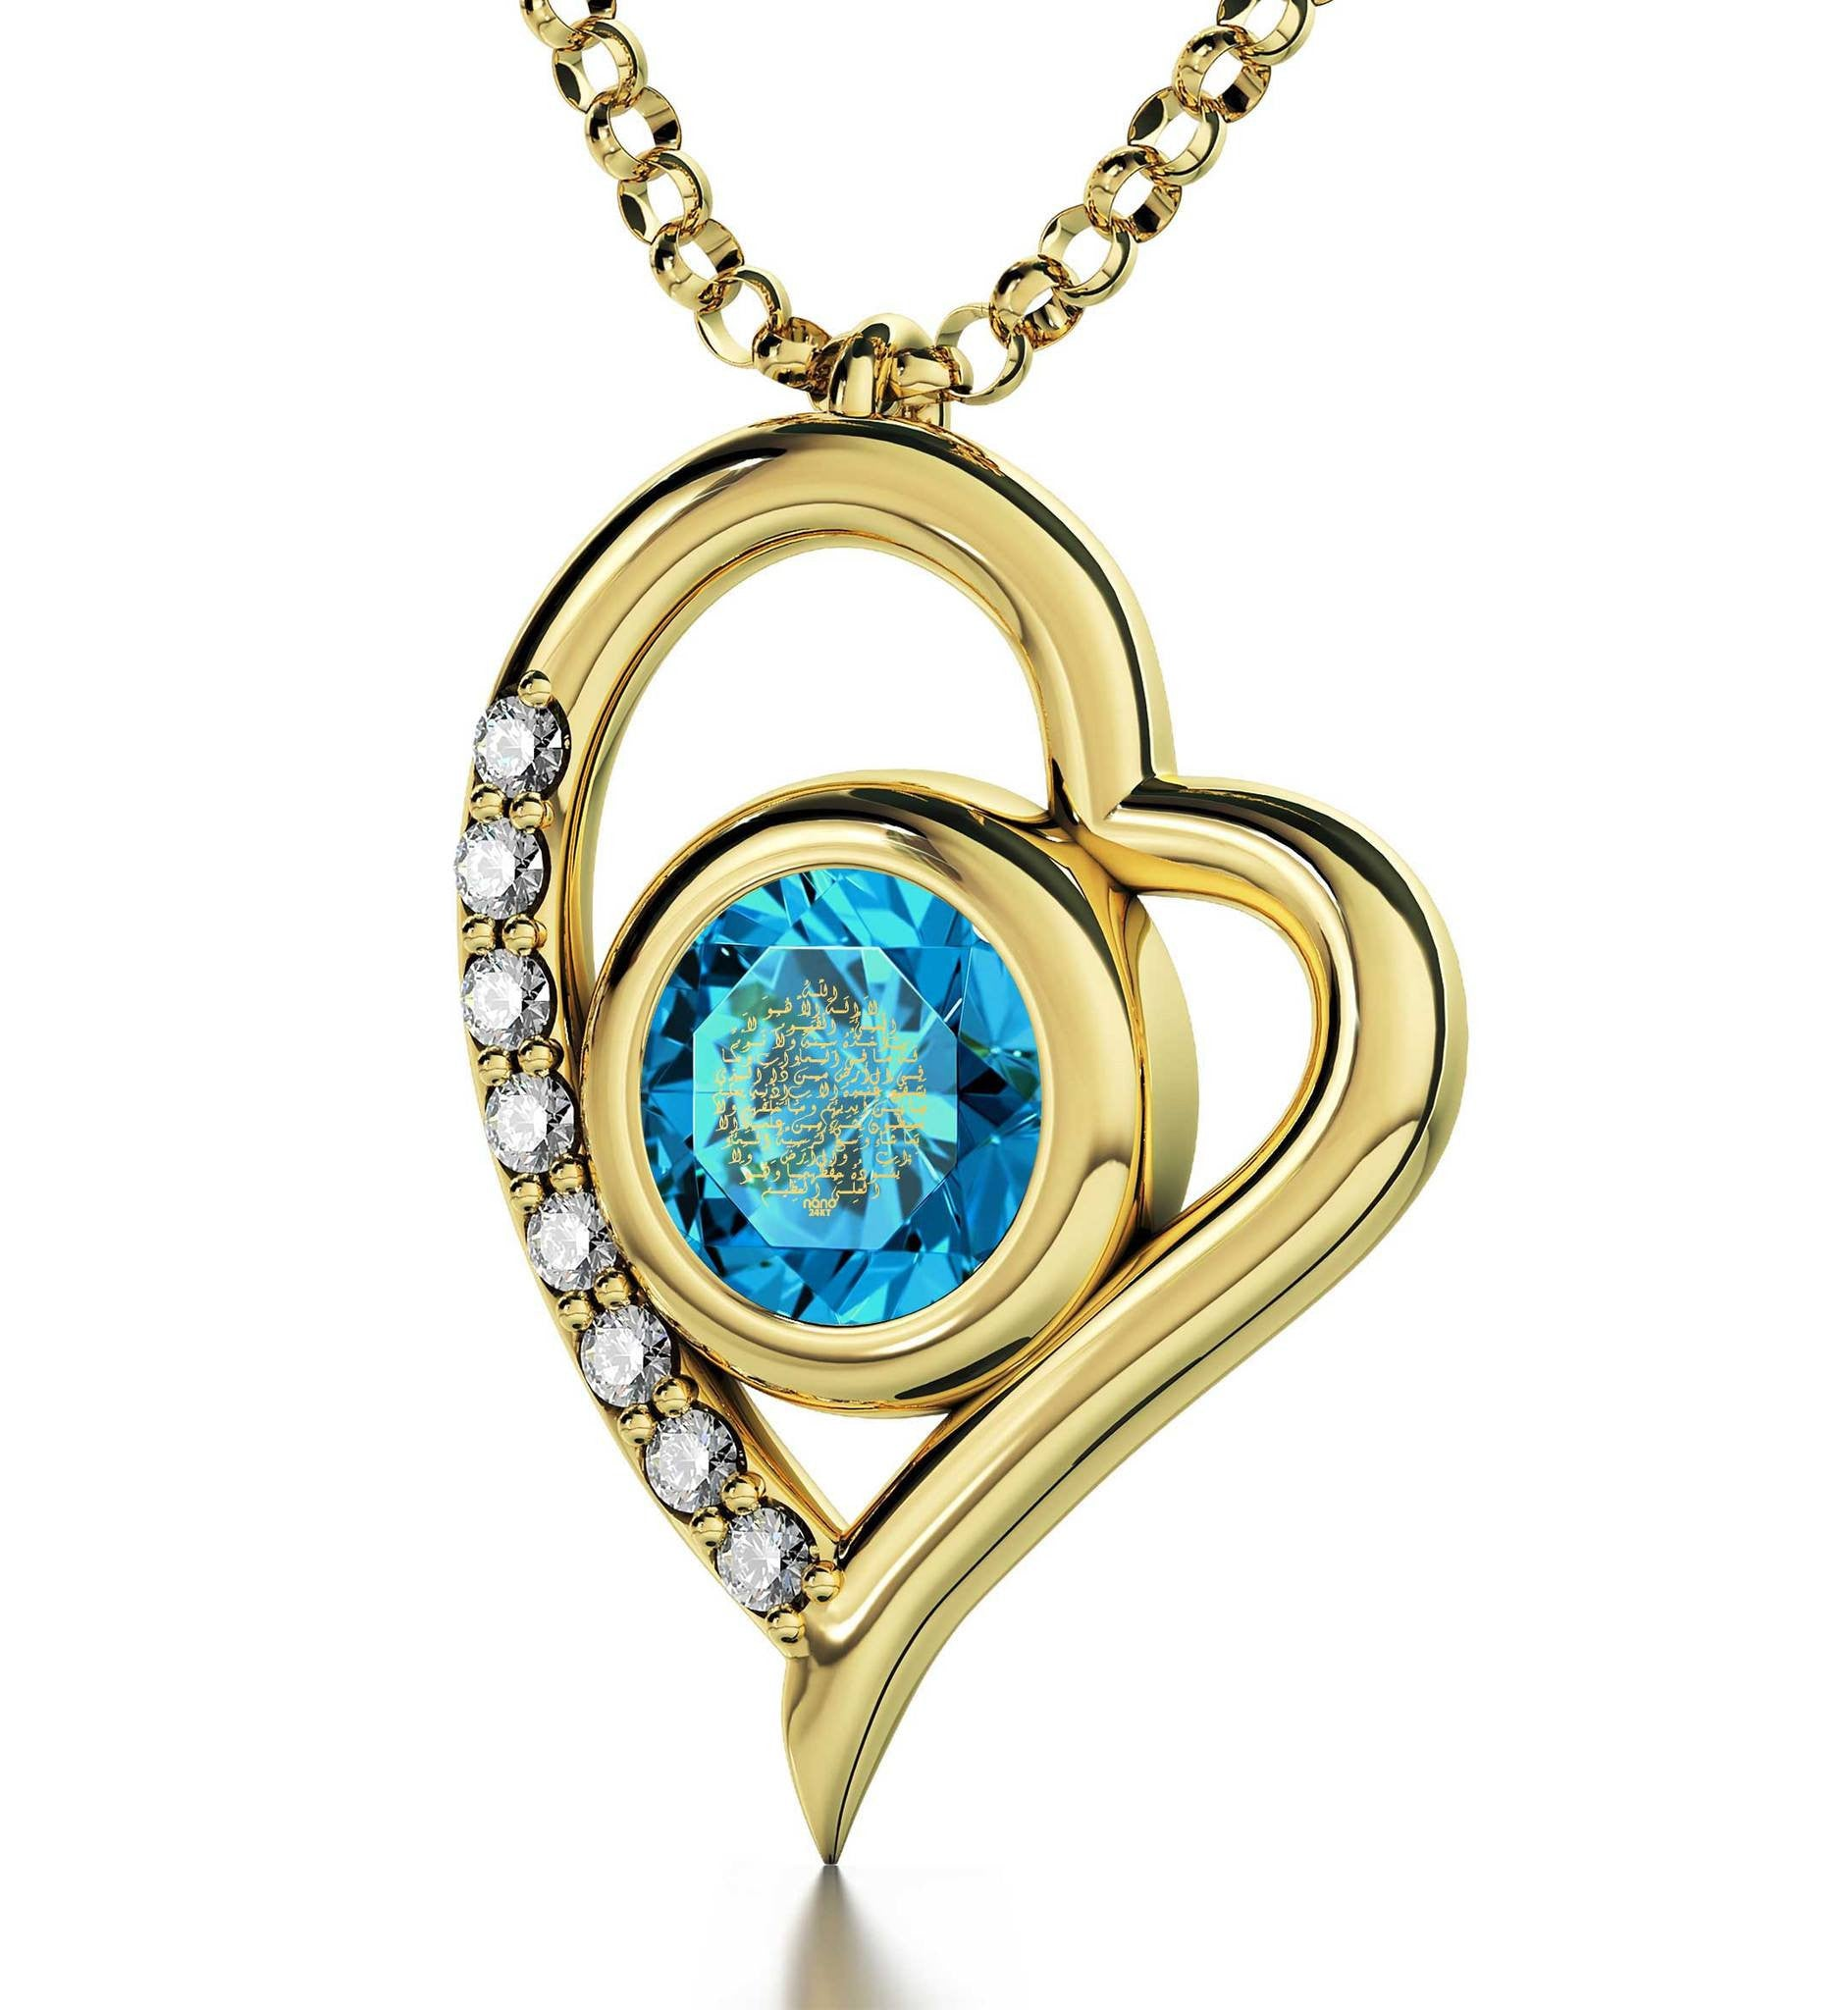 Arabic Jewelry for Women: Ayatul Kursi - Heart Swarovski - Silver Gold Plated - Nano Jewelry